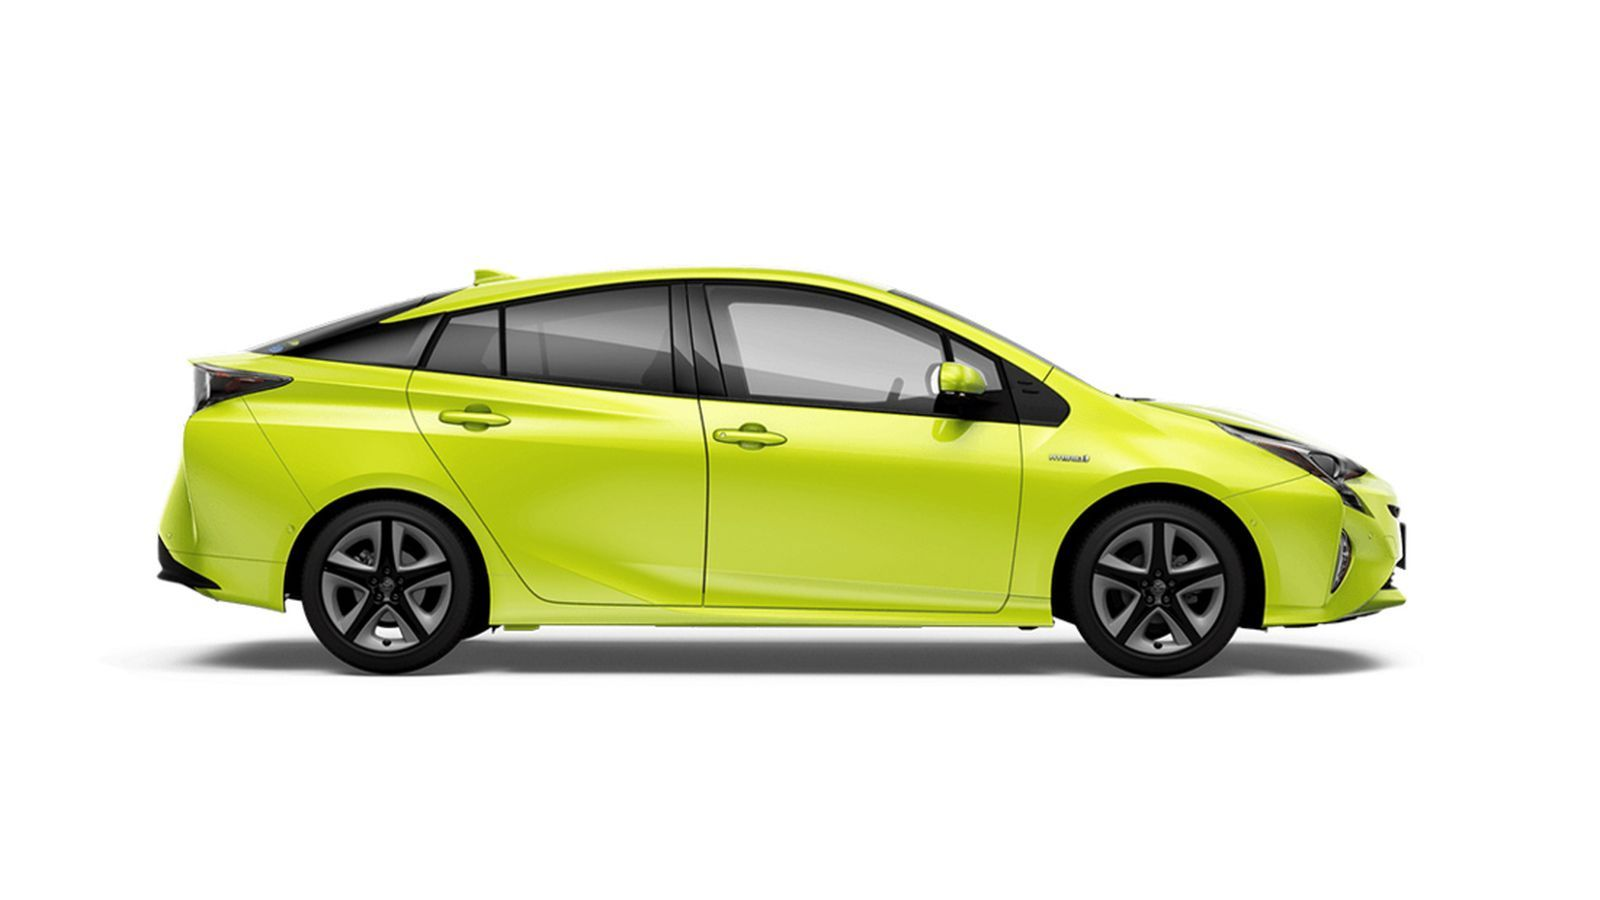 Toyota S Weird Bright Green Prius Uses Science To Stay Cooler In